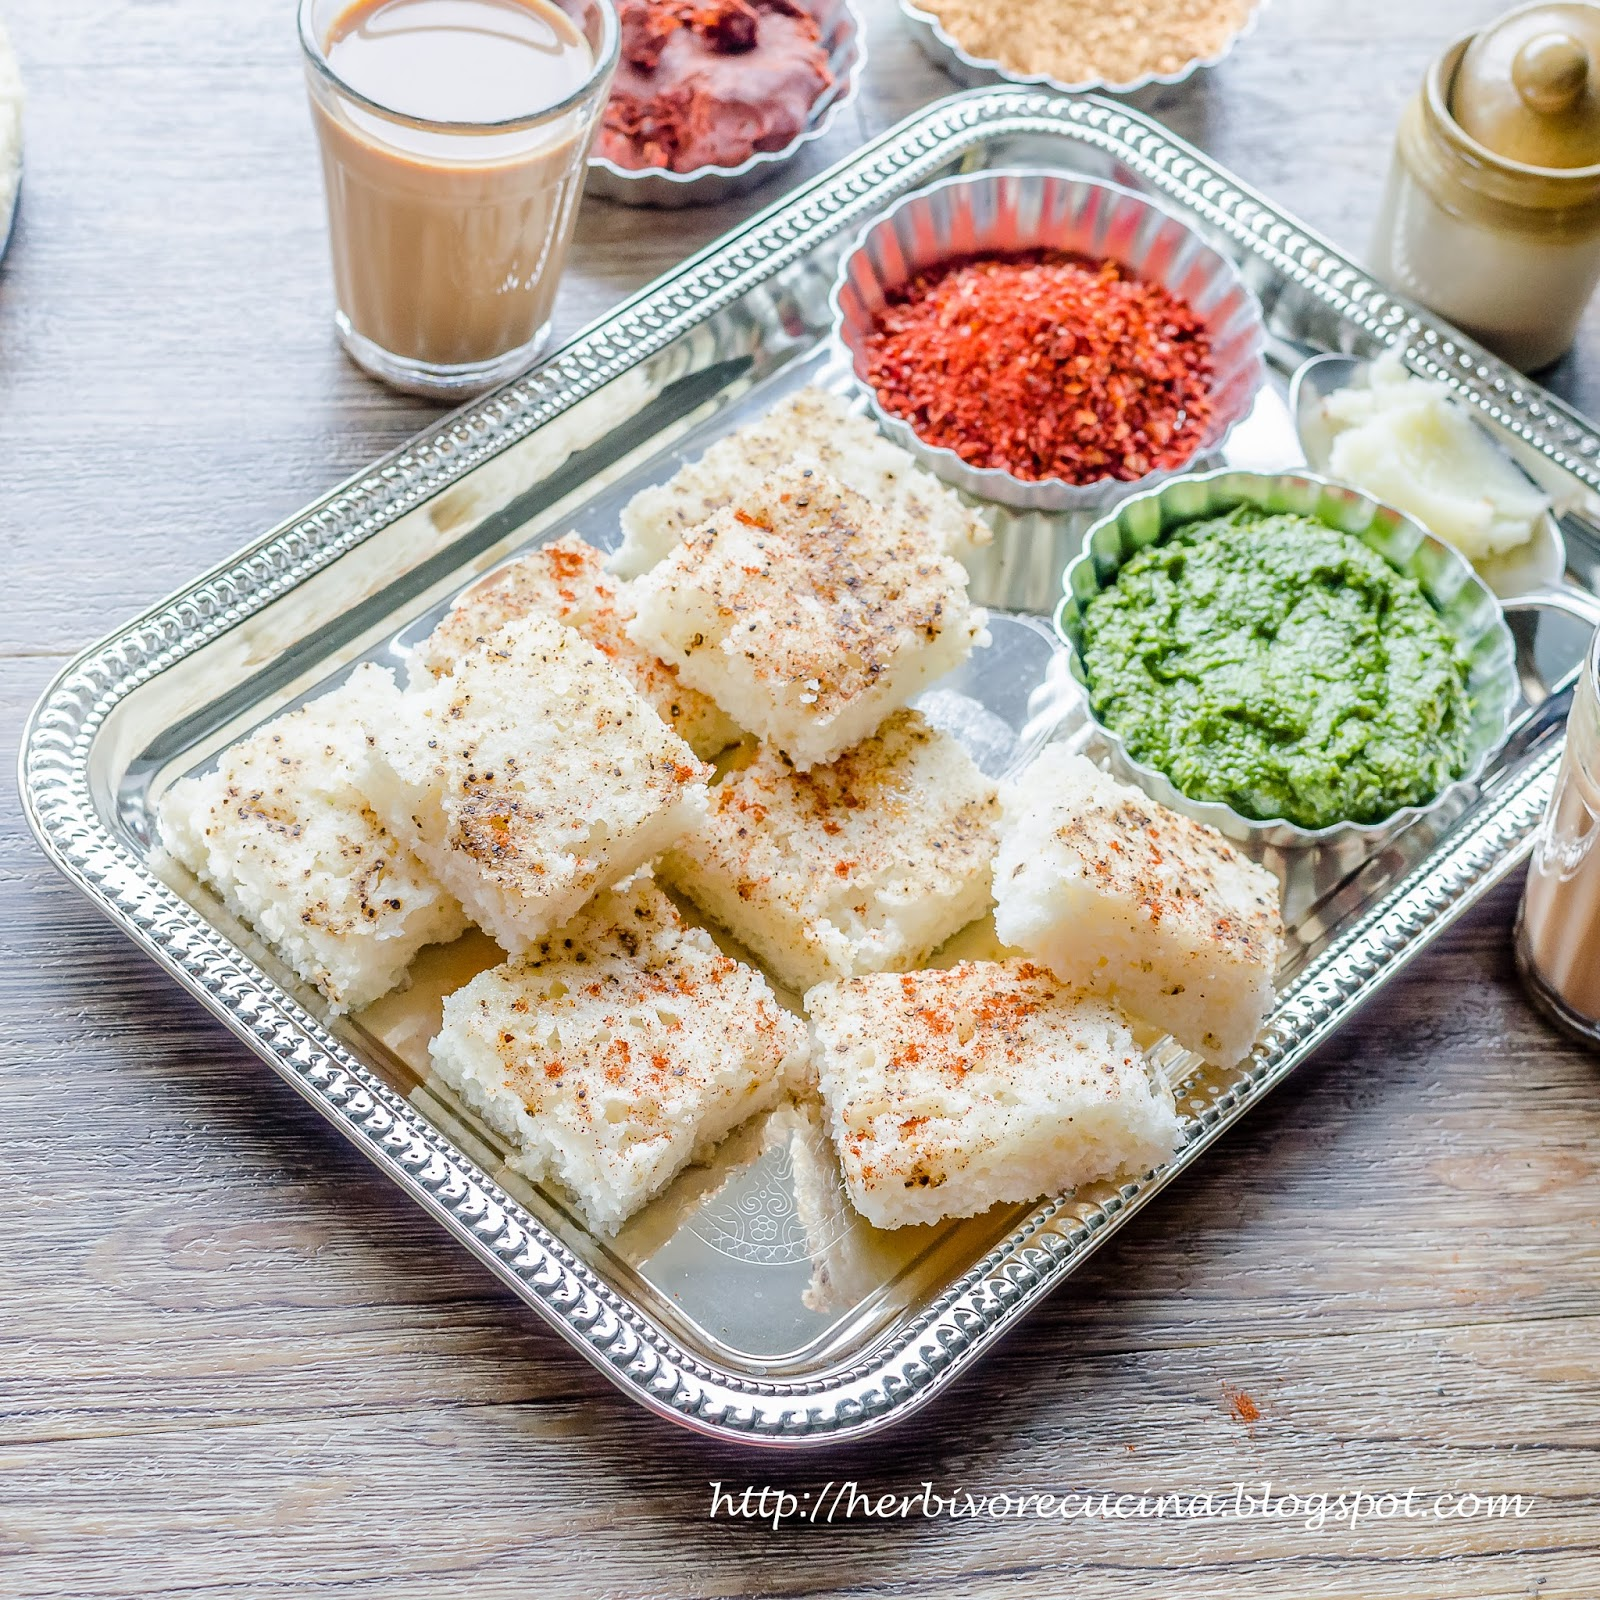 Herbivore cucina white dhokla gujarati khatta dhokla dhokla or dhokra gujarati is a vegetarian food item that originates from the indian state of gujarat it is made with a fermented batter forumfinder Image collections